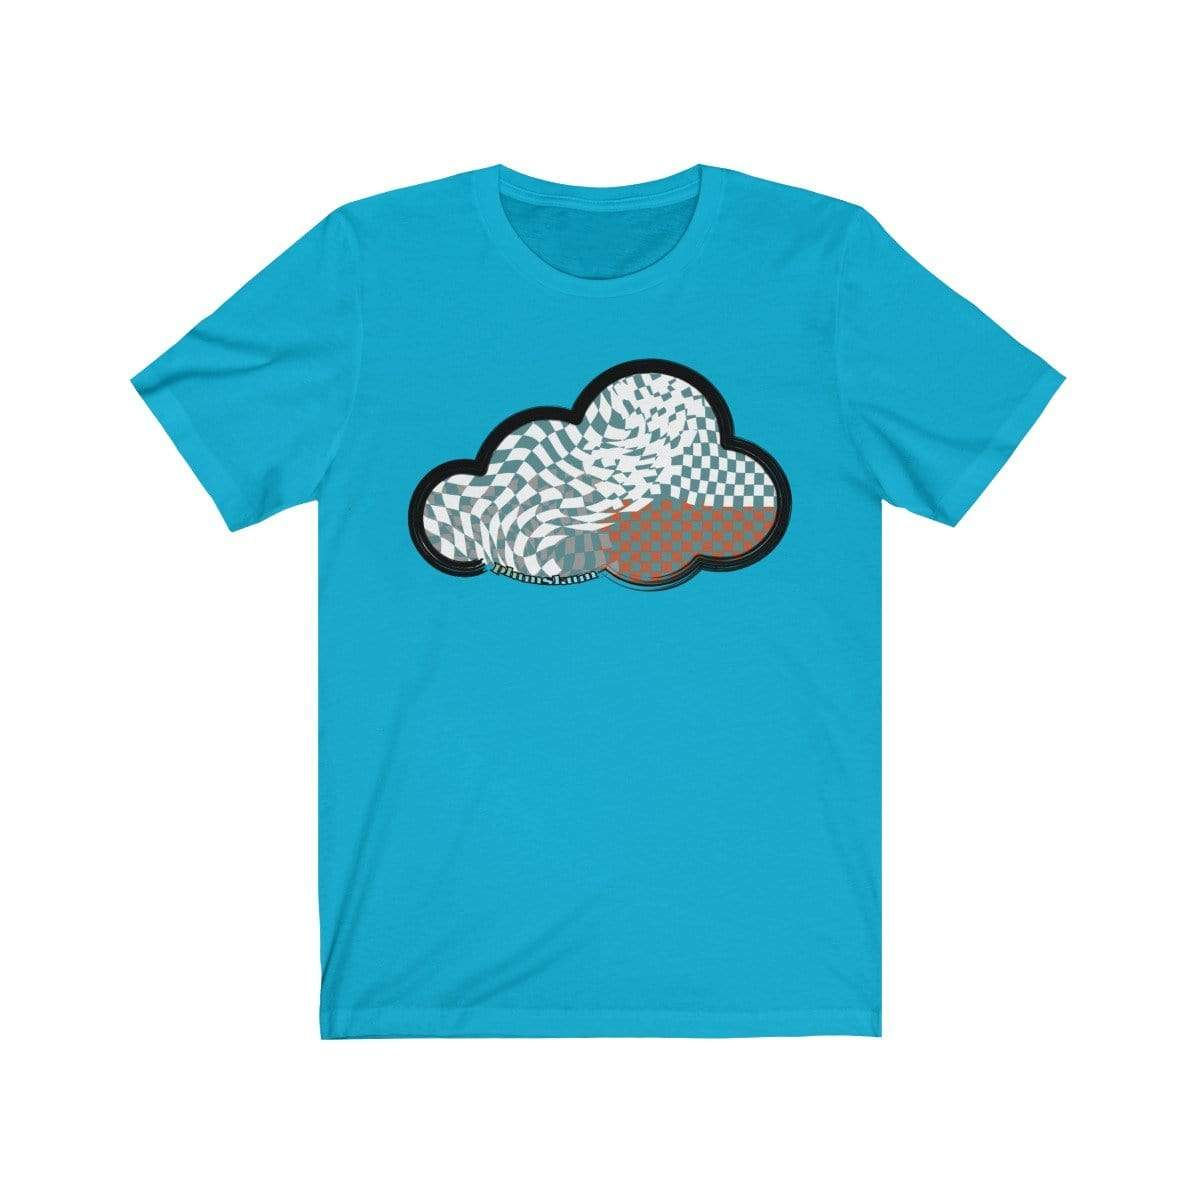 Printify T-Shirt Turquoise / M Checker Art Clouds T-Shirt